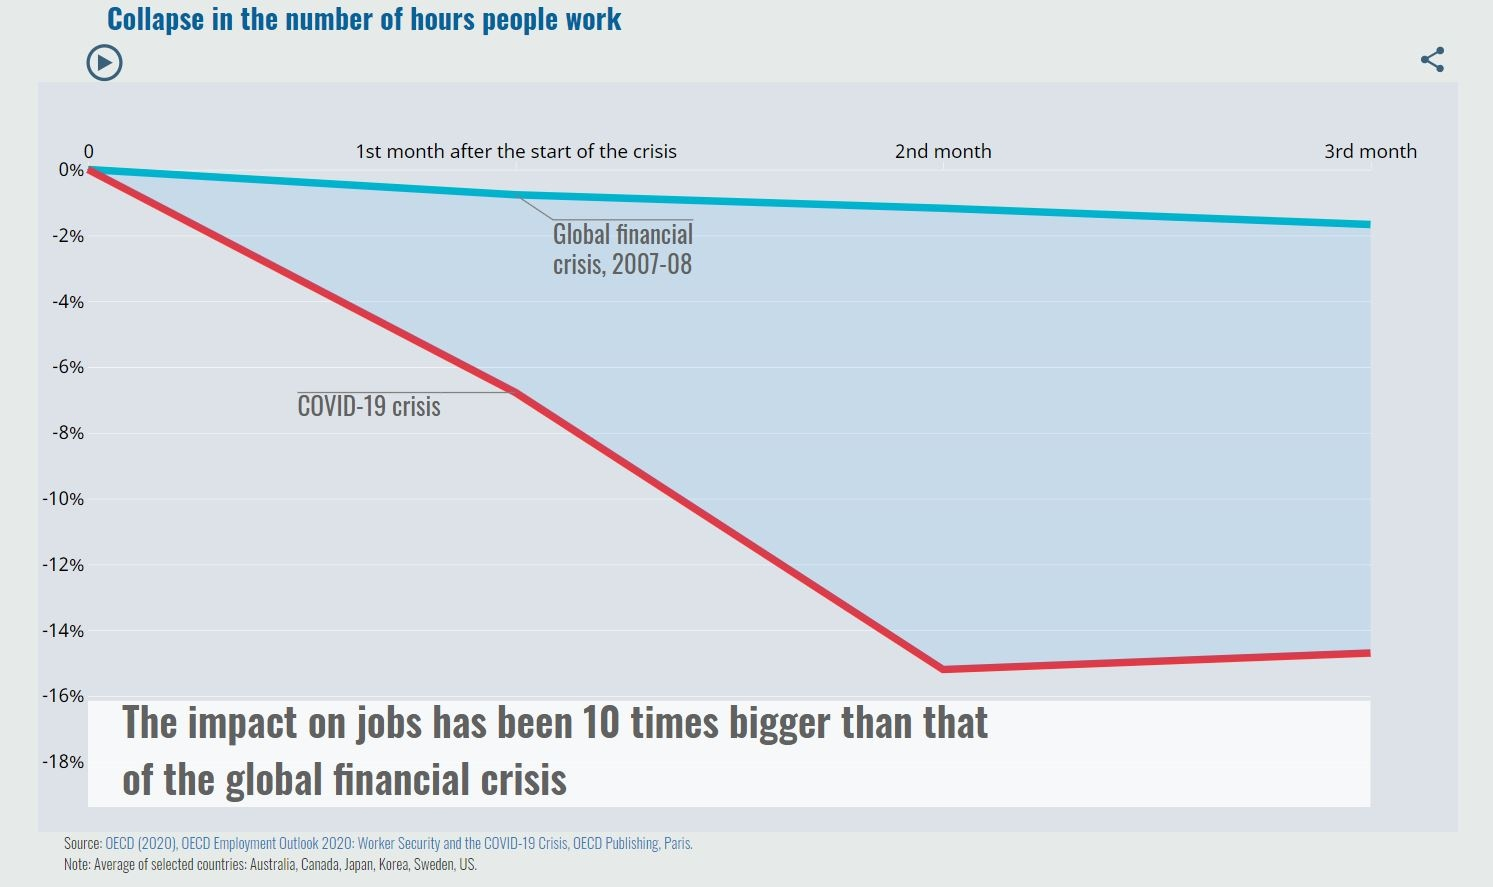 Collapse in the number of hours people work